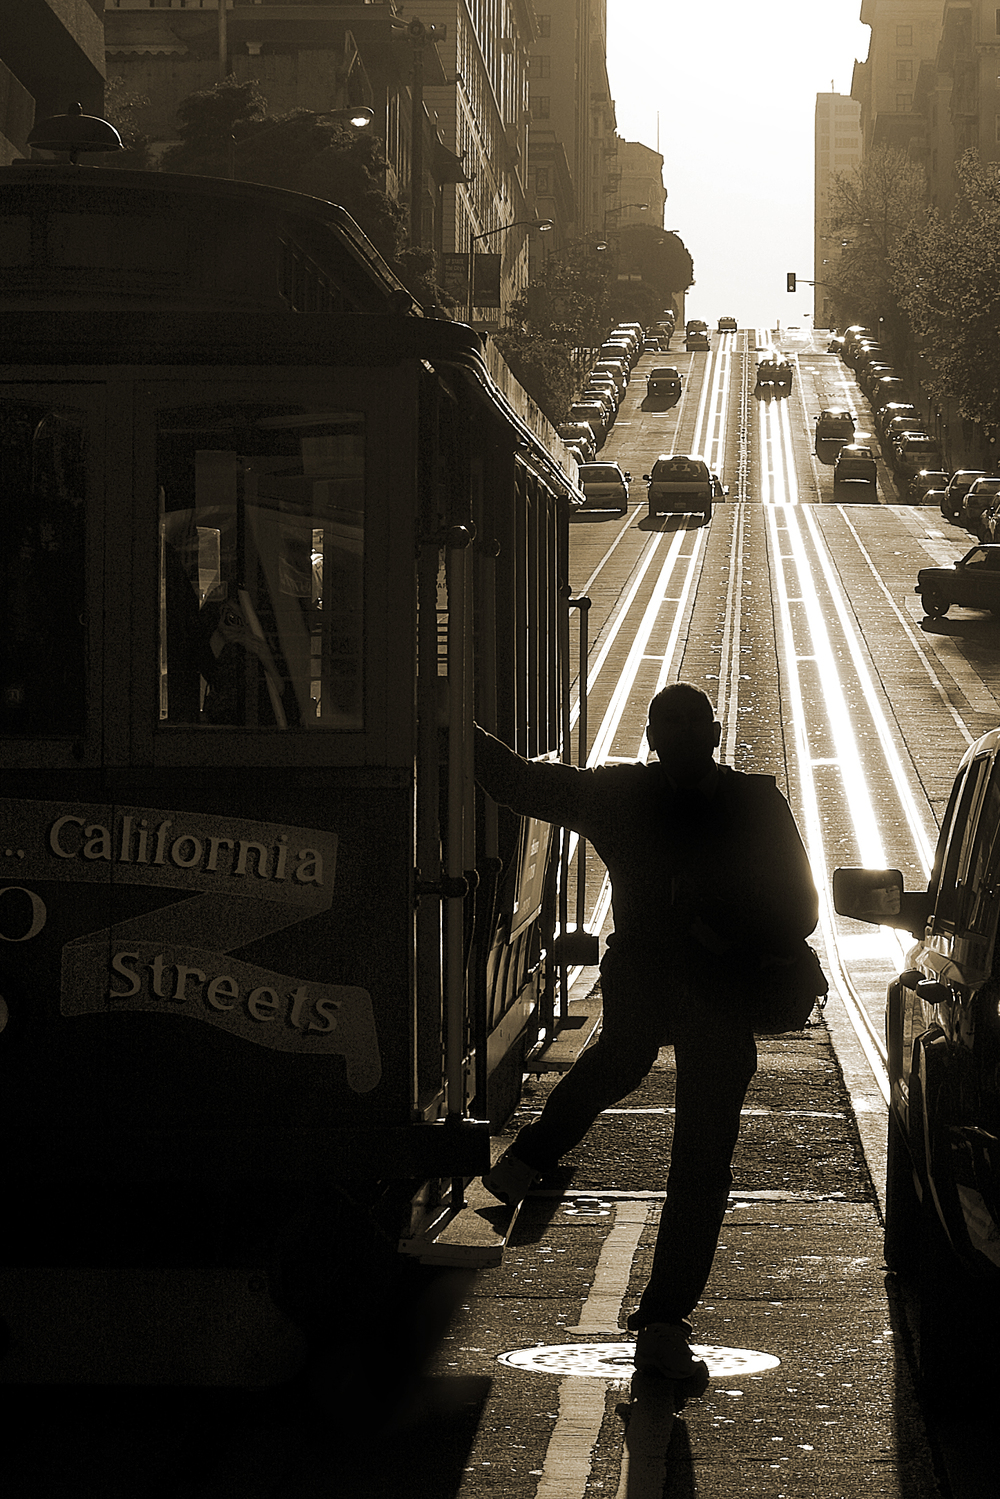 A man exits a cable car on the California Street - Van Ness Avenue line in San Francisco, Calif. Sunday, Mar. 29, 2009.